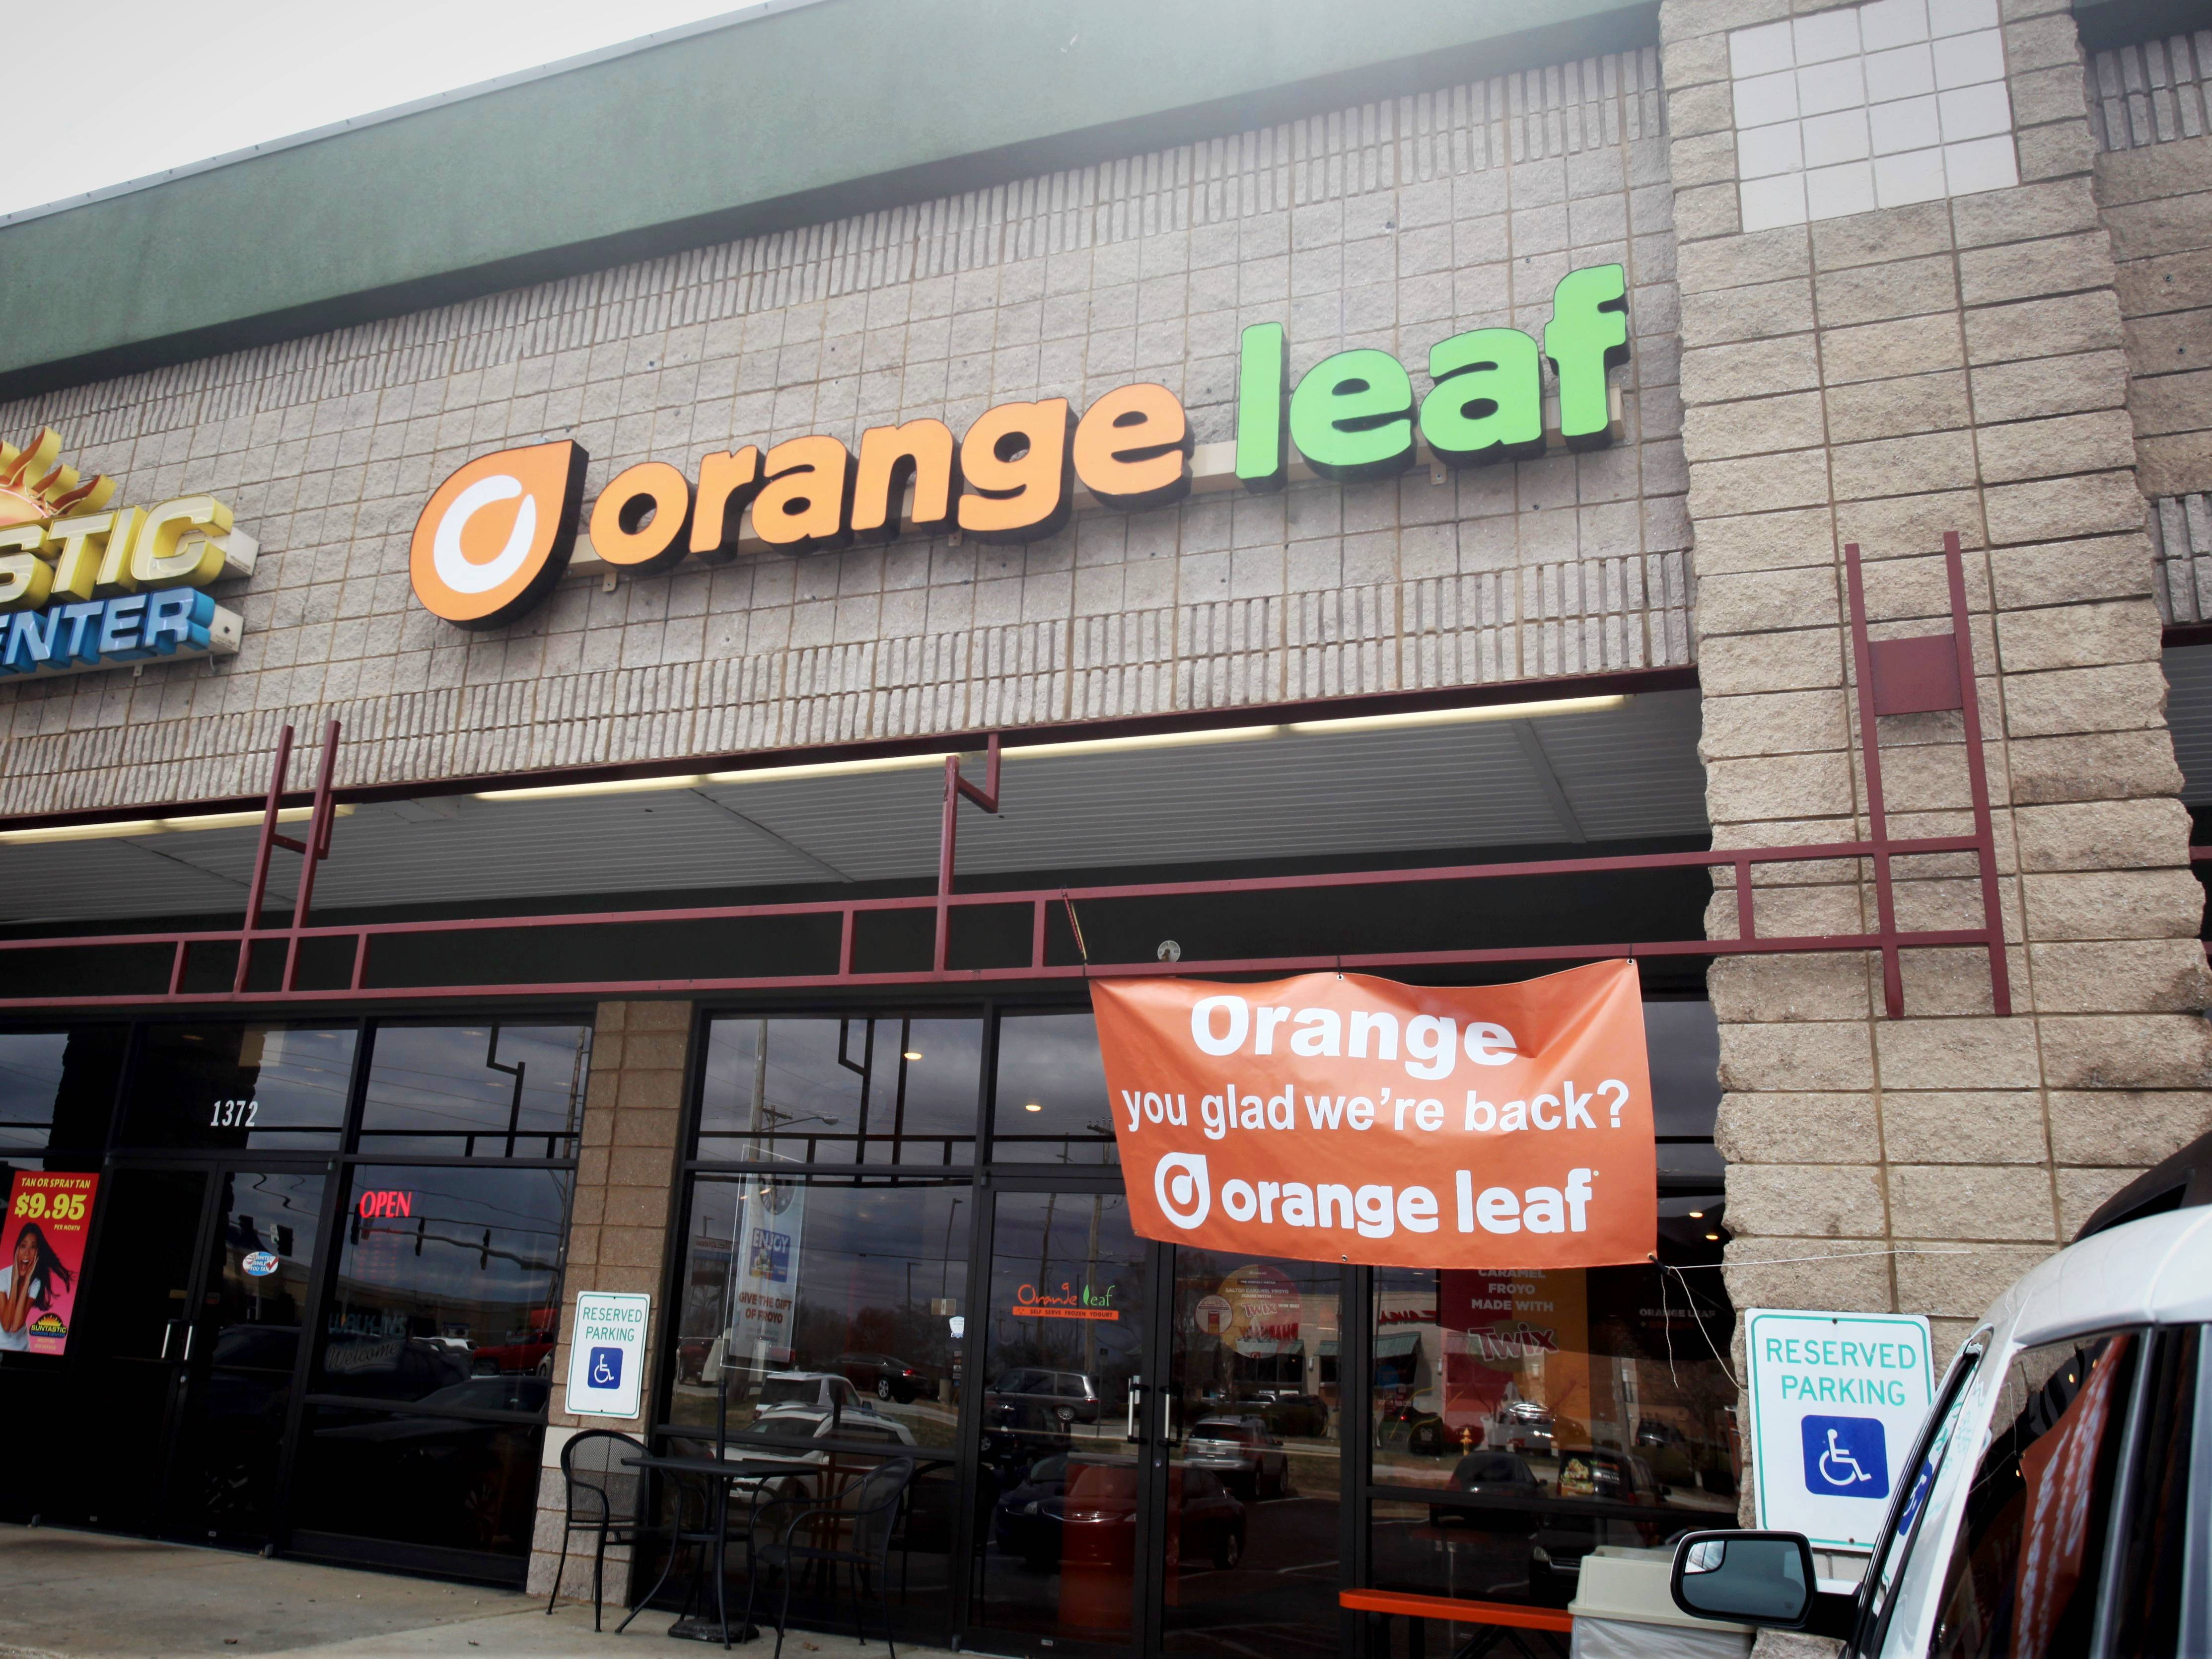 Orange Leaf has returned to its location at 1368 E. Republic Road in Springfield as of March 14, 2019.